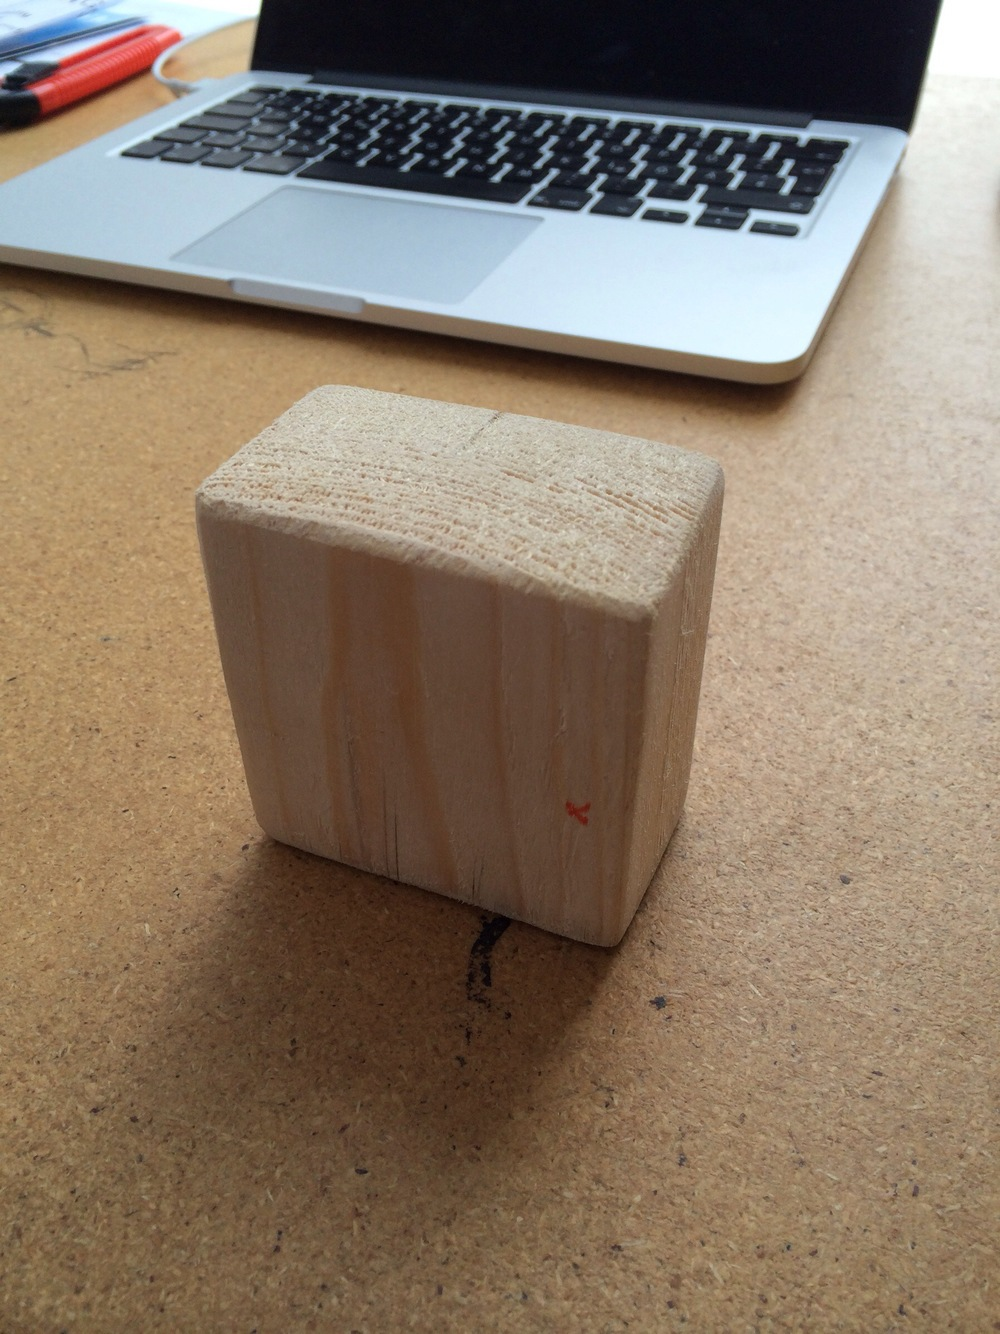 Mikme microphone - early wooden prototype - with Philipp's Apple macbook Pro